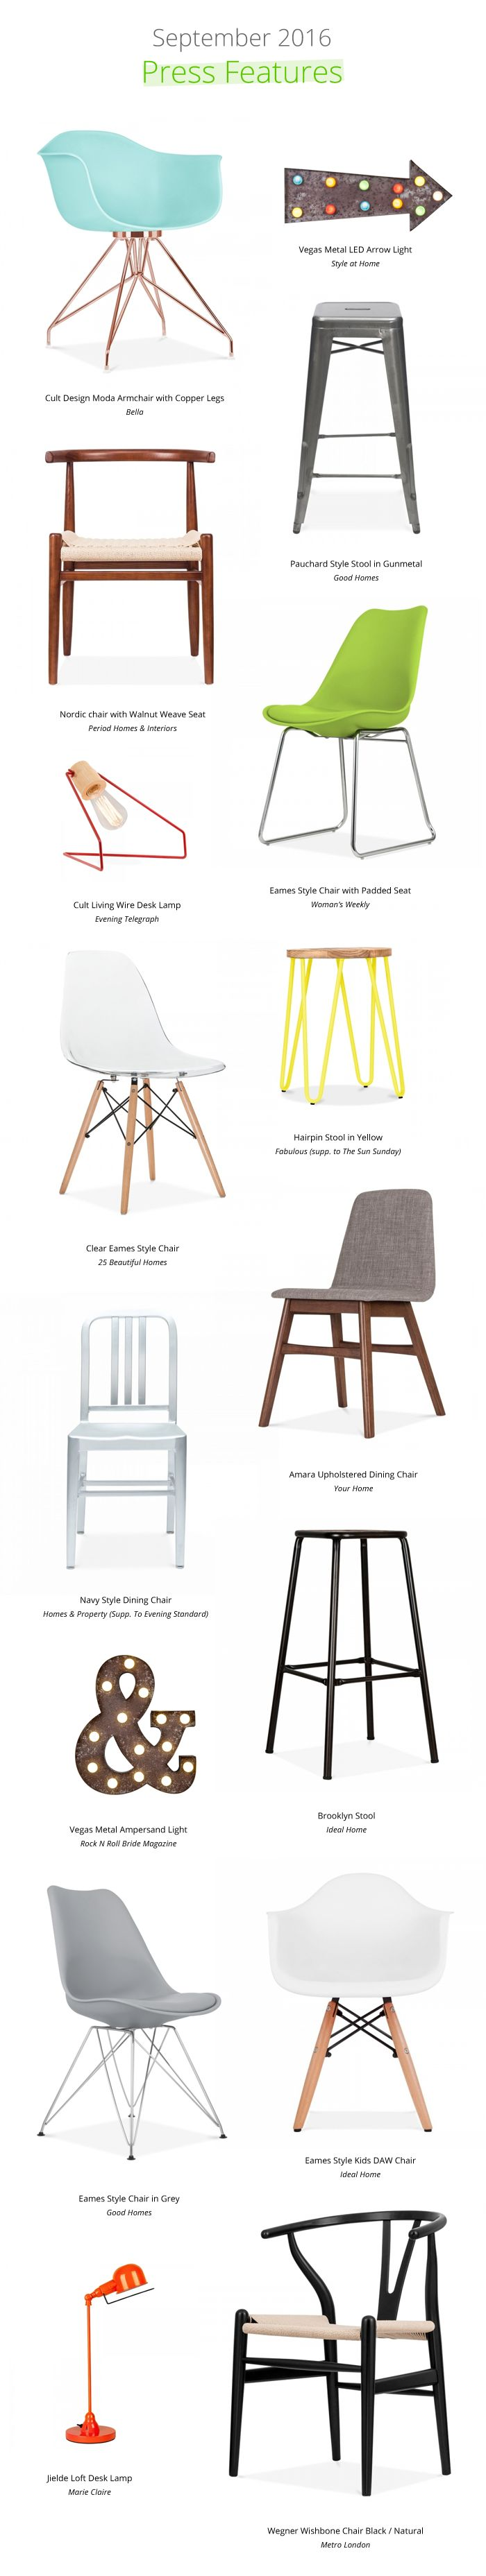 From Moda chairs to Jielde desk lamps, check out our hottest products this september.